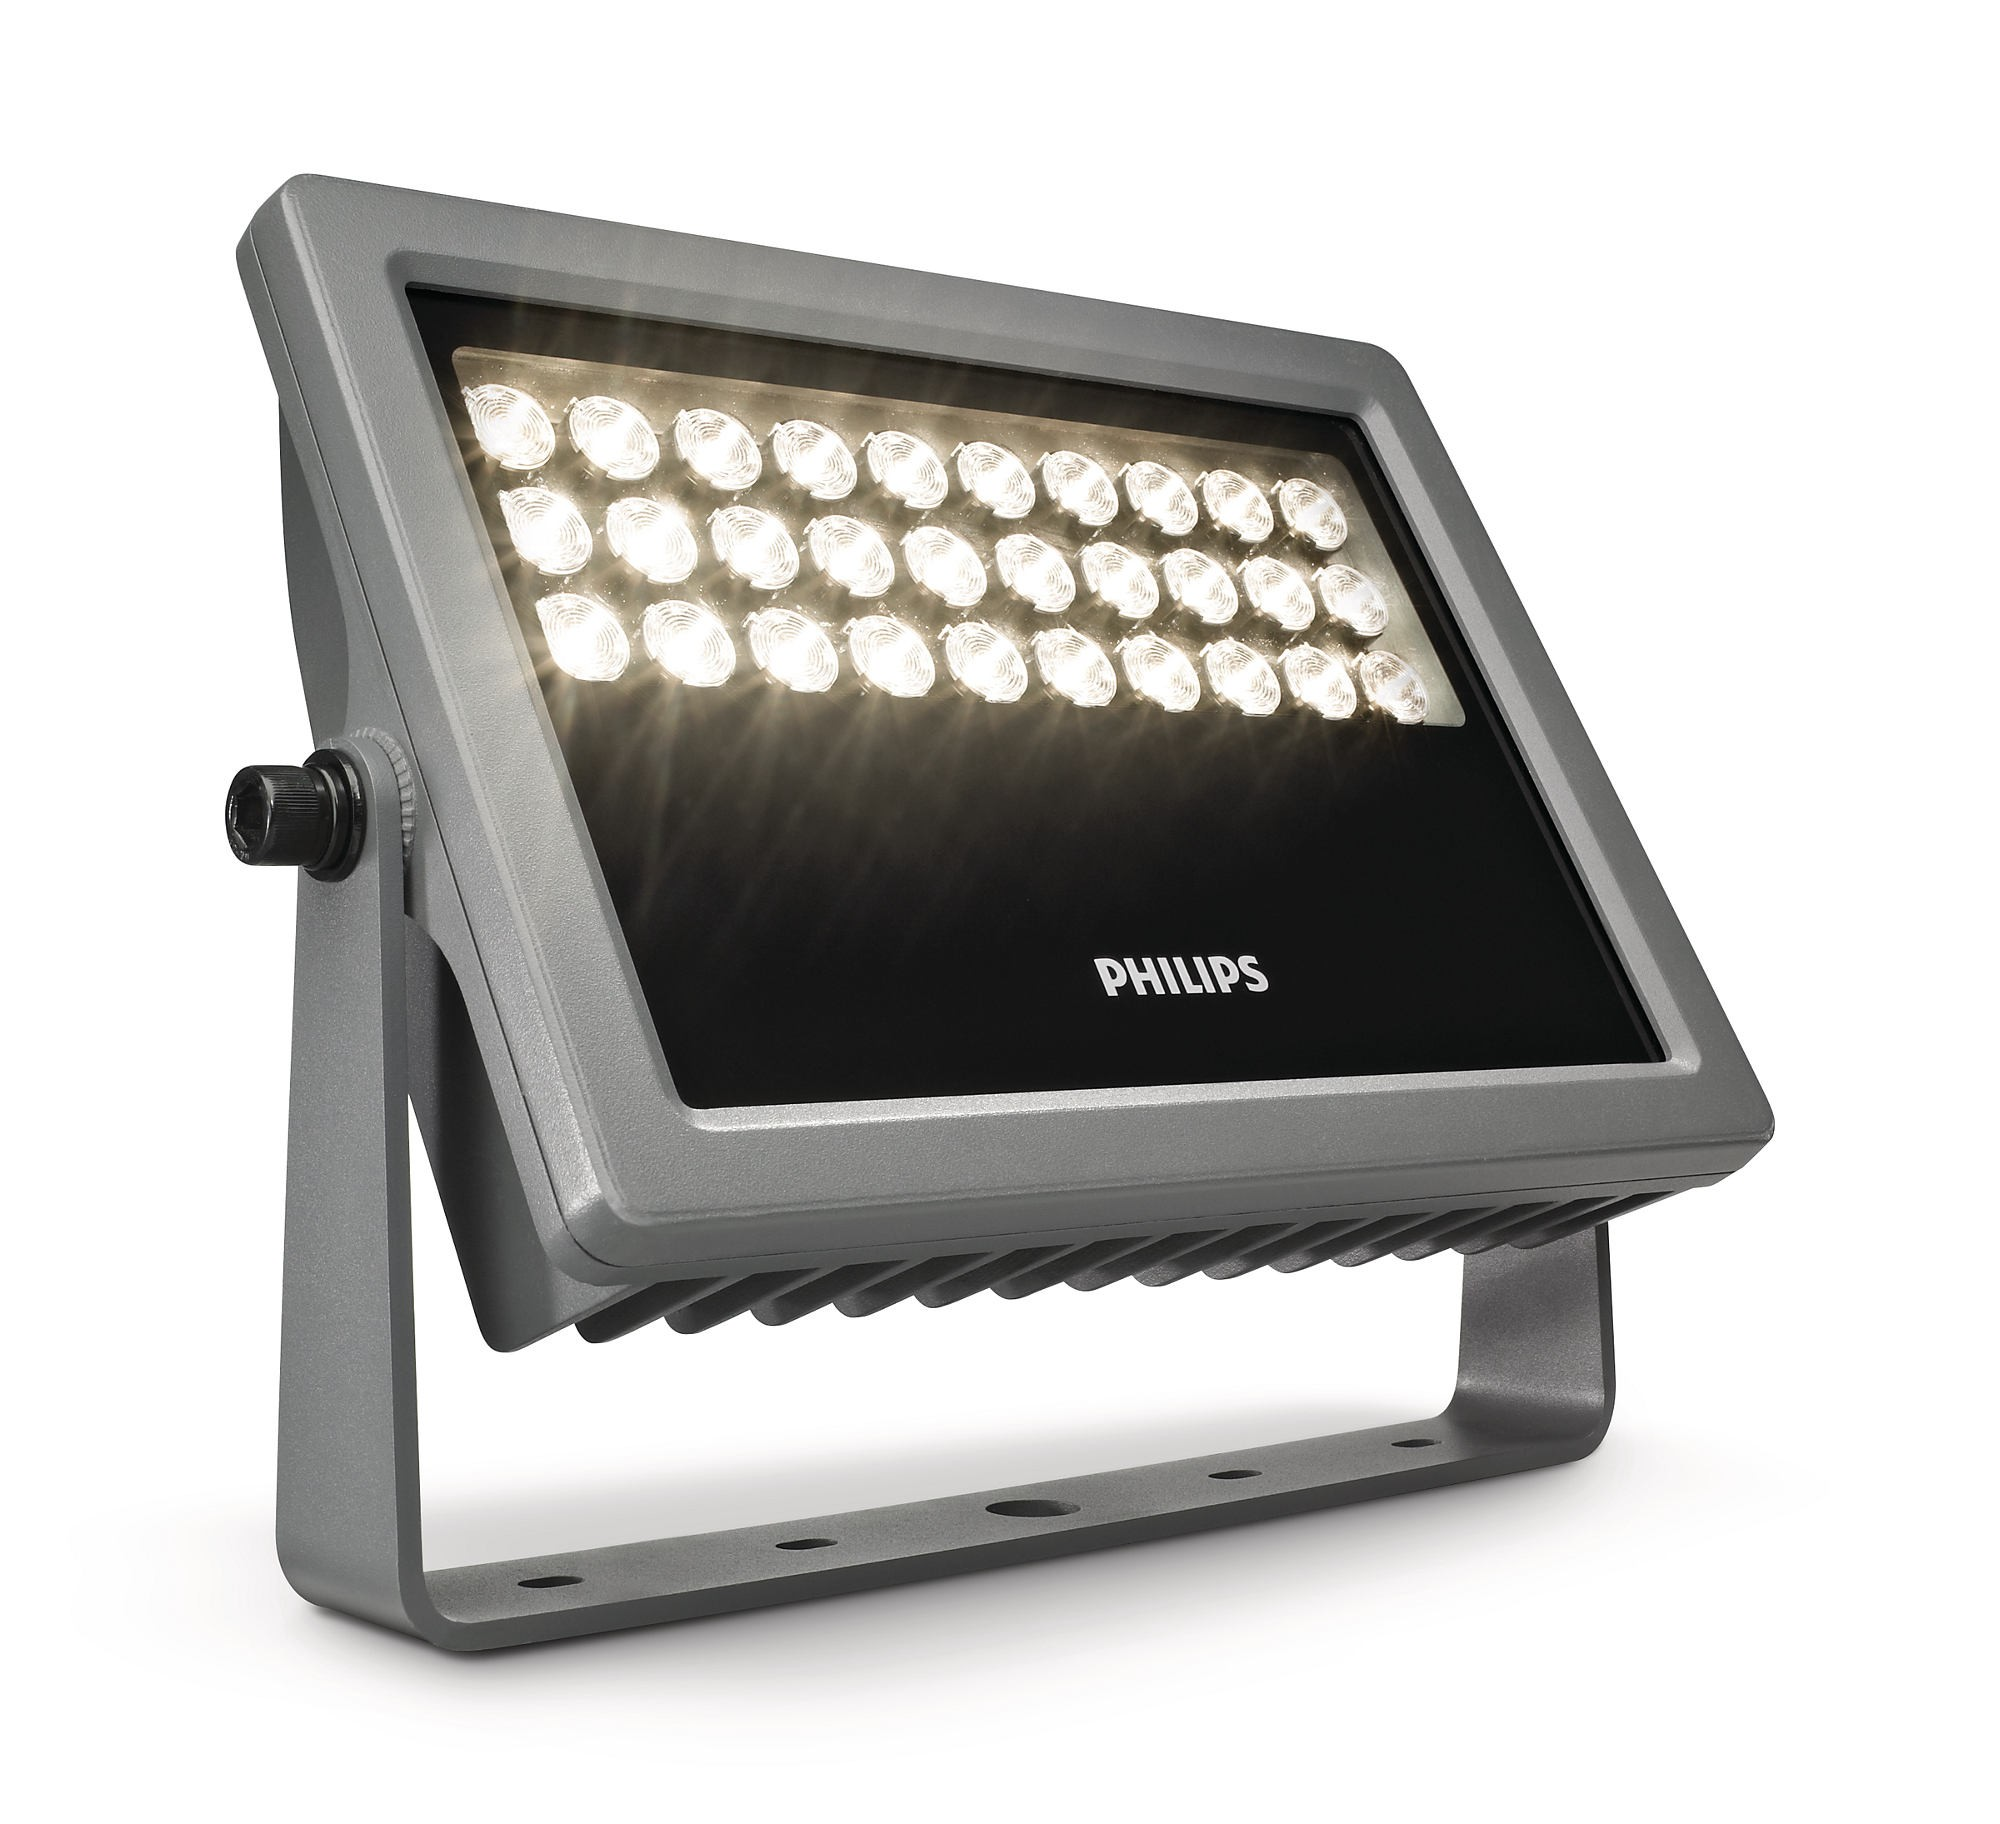 Philips flood light